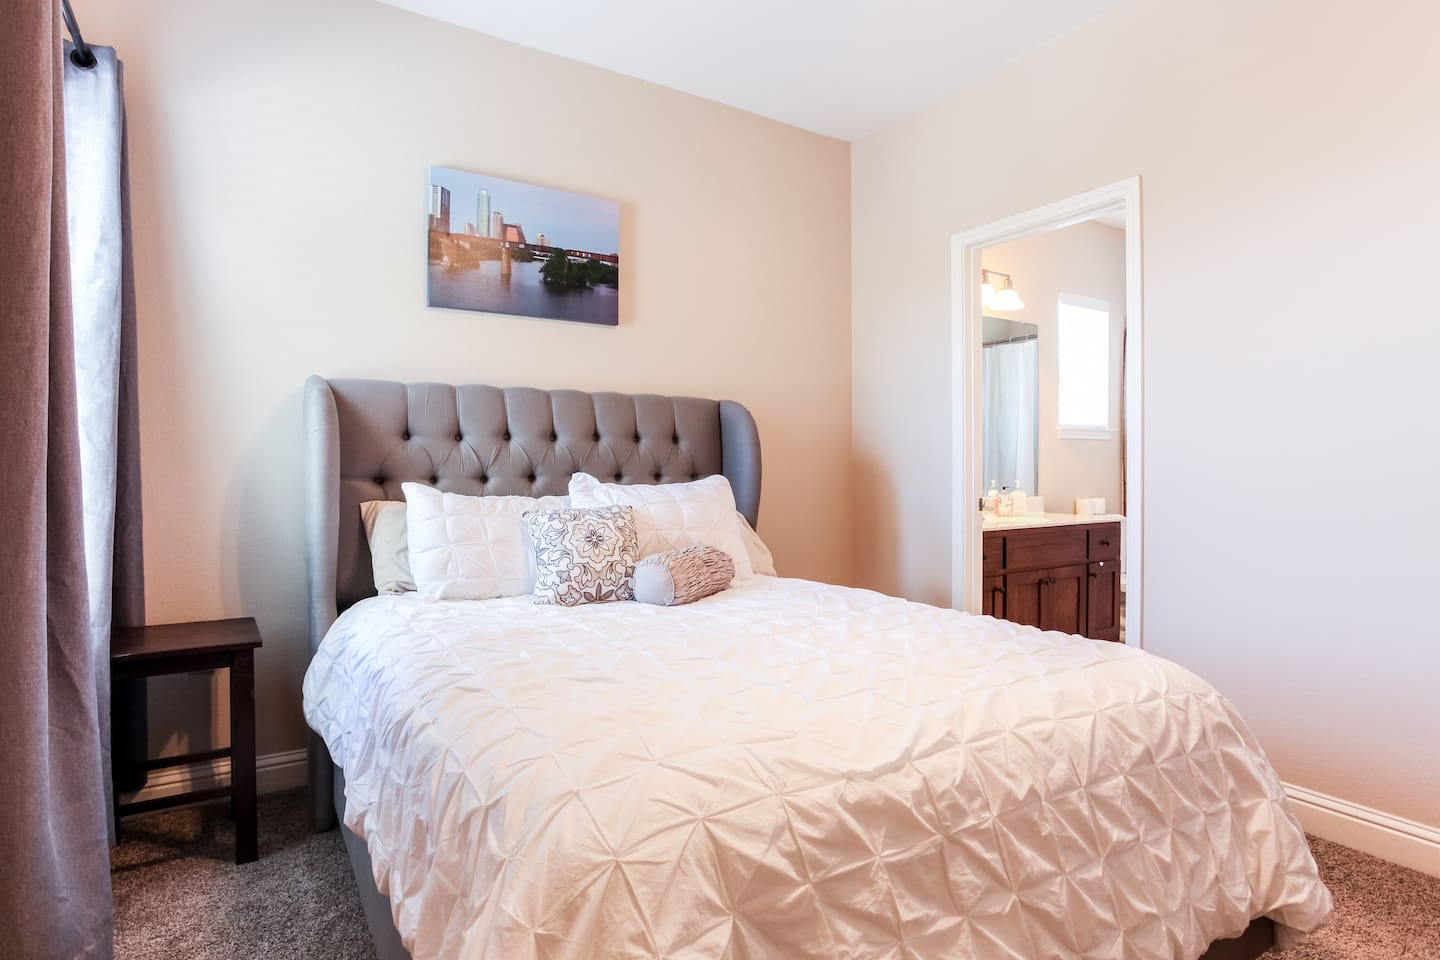 Comfortable queen size bed in enclosed bedroom with door for privacy from the rest of the bunkhouse.